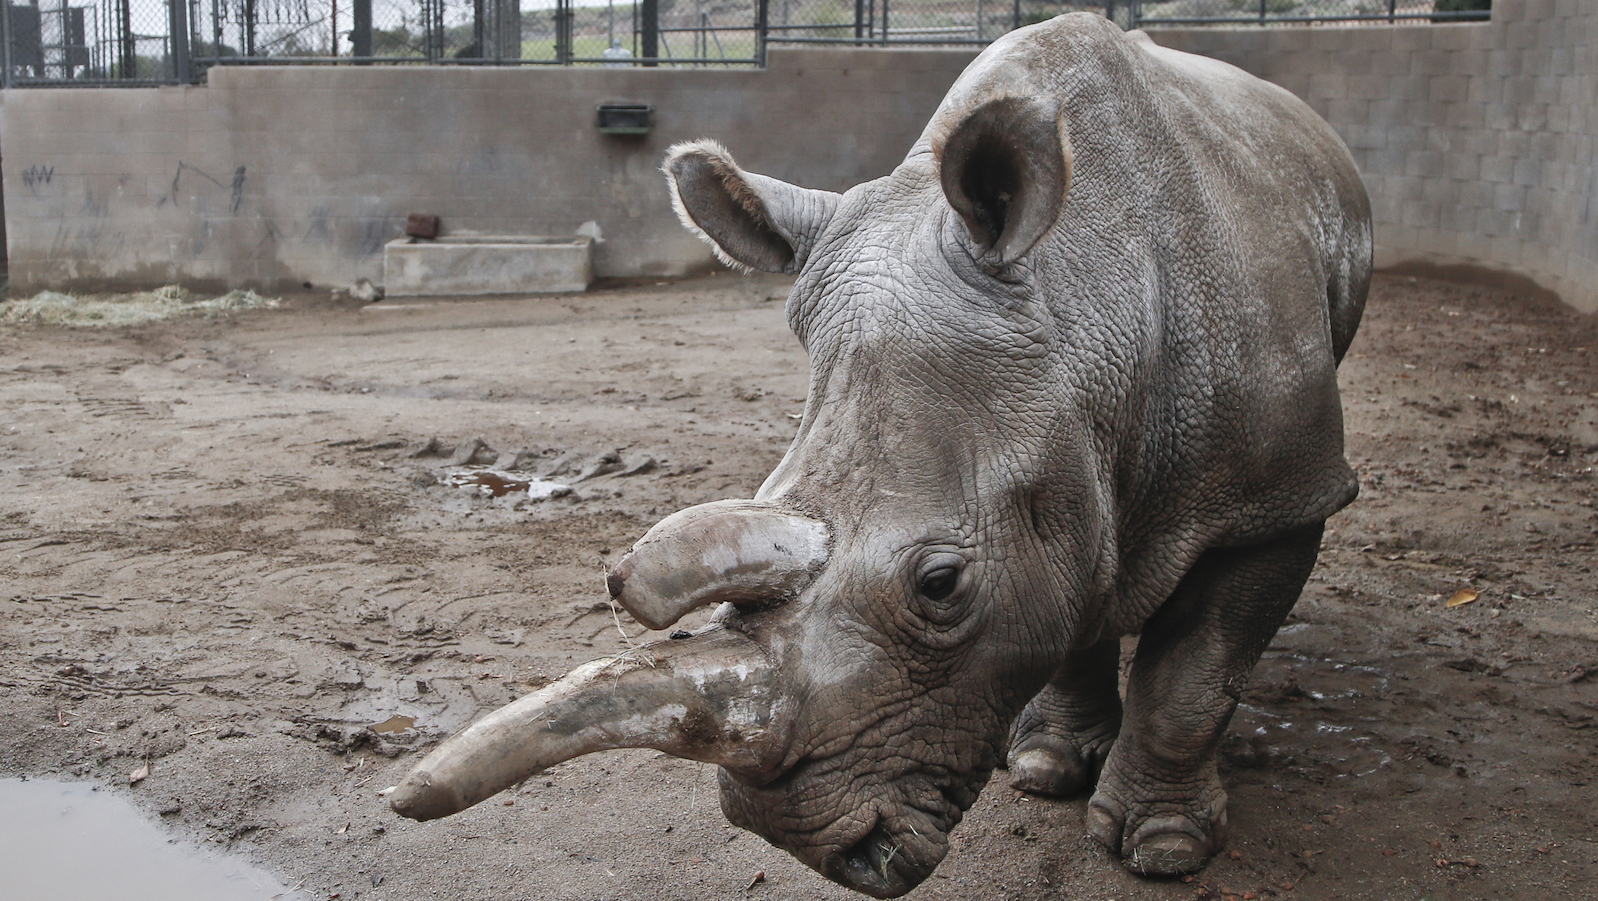 In this Dec. 31, 2014, file photo, Nola, a 40-year-old northern white rhino who is only one of five remaining of the species, wanders around her enclosure at the San Diego Zoo Safari Park on a cold winter day in Escondido, Calif. Six female southern white rhinos arrived on a chartered MD11 flight from South Africa landed at the San Diego International Airport on Thursday, Nov. 5, 2015.  San Diego Zoo Global has one of the most successful rhino breeding programs in the world. To date, a total of 94 southern white rhinos, 68 greater one-horned rhinos and 14 black rhinos have been born at the San Diego Zoo Safari Park.